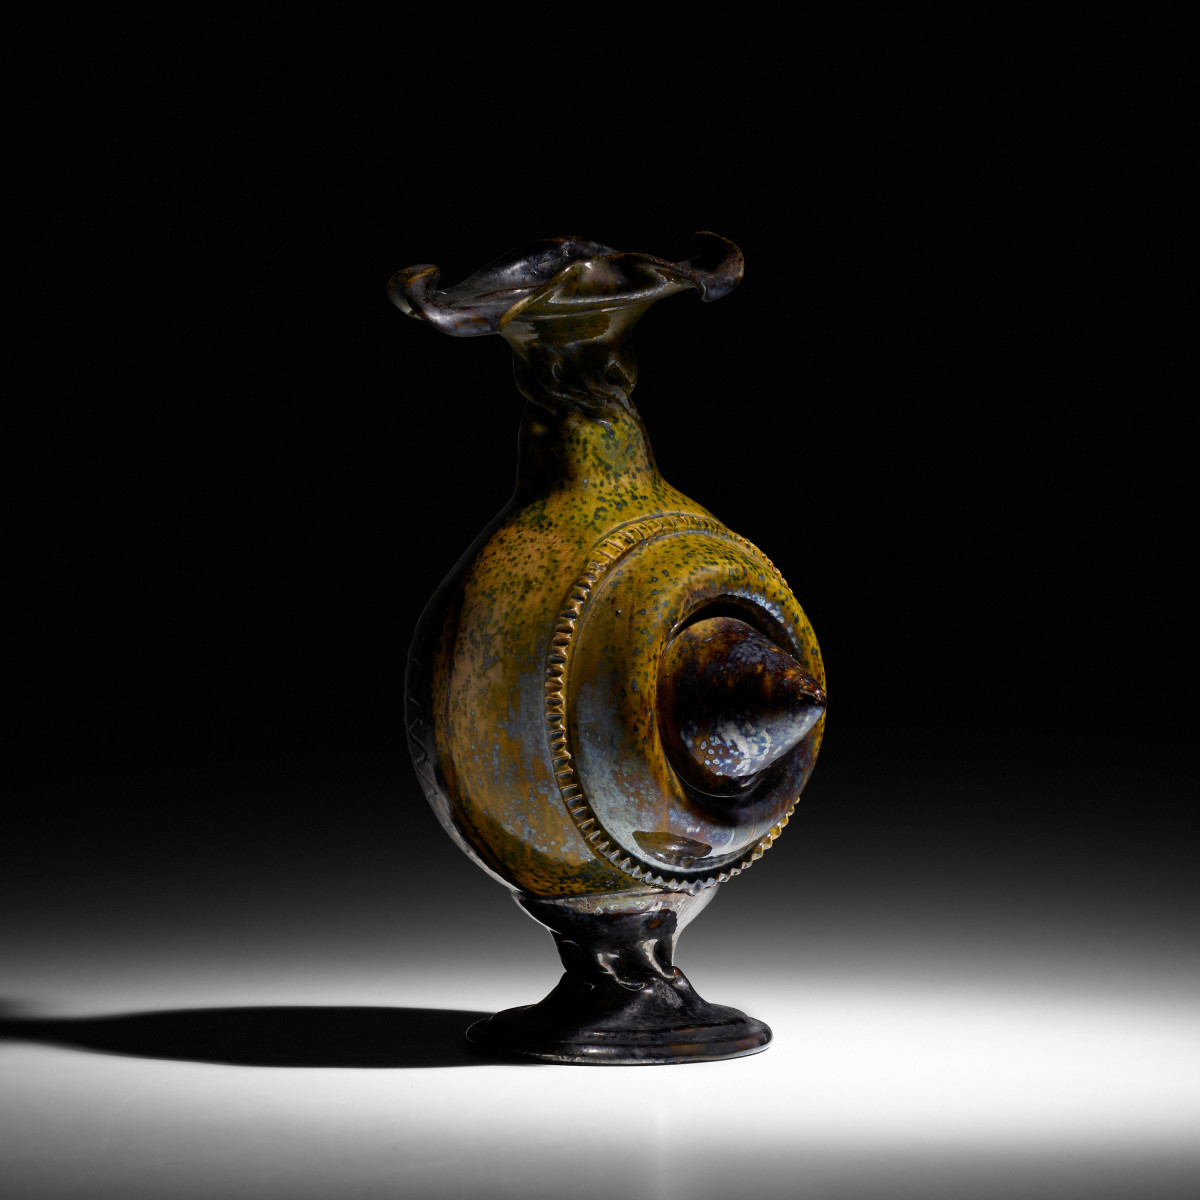 The exceptional Ohr vessell that sold for $100,000. All pottery photos are courtesy of Rago Arts and Auction Center